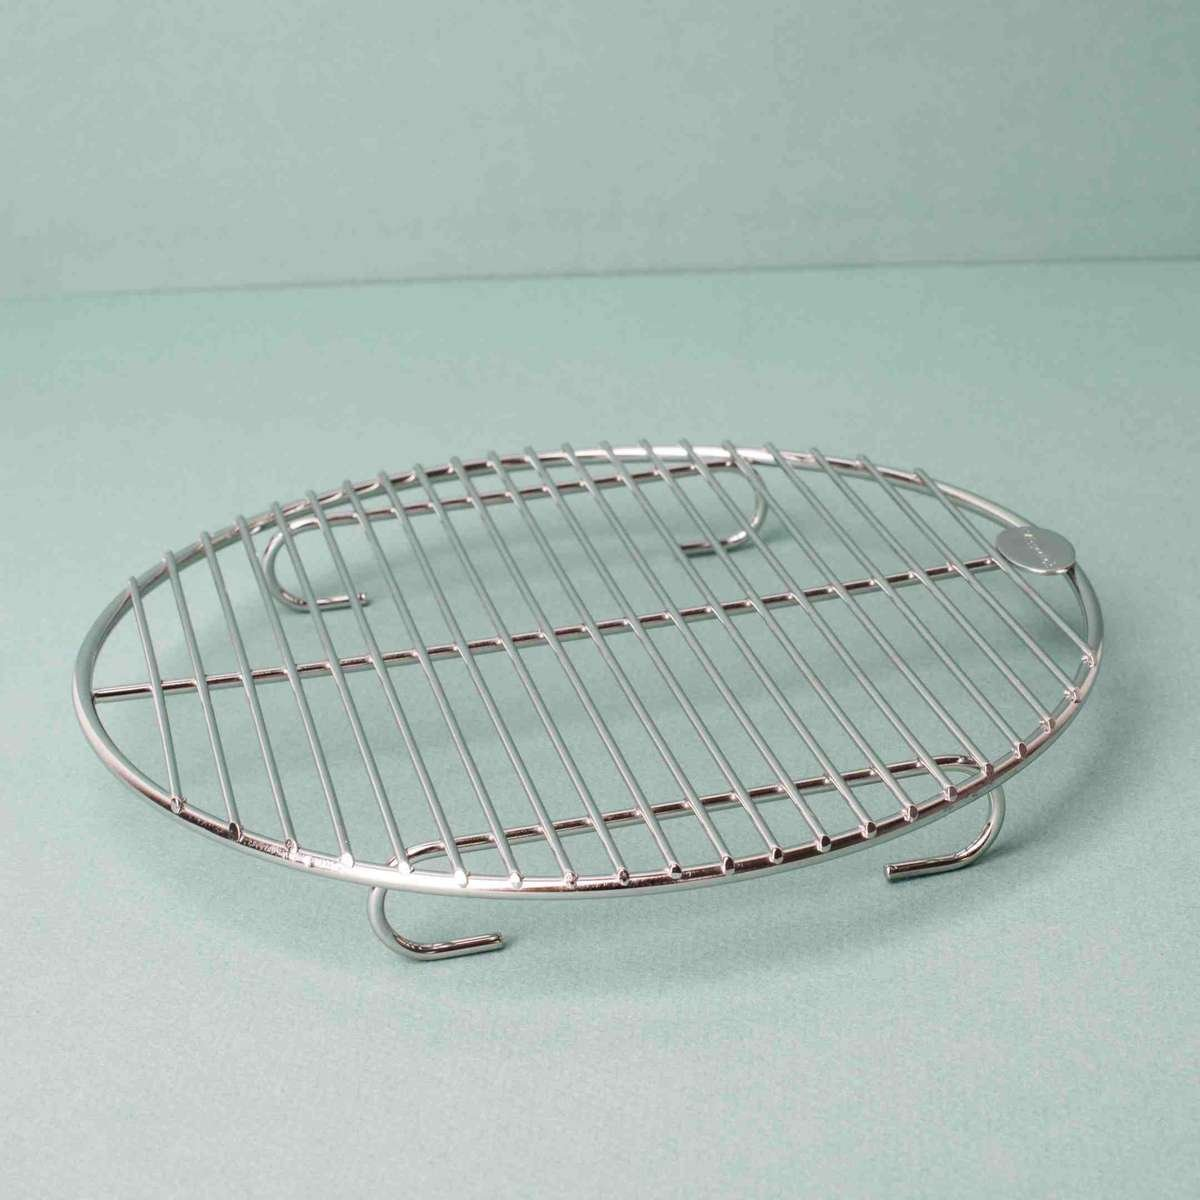 Stainless Steel Trivet Thermomix